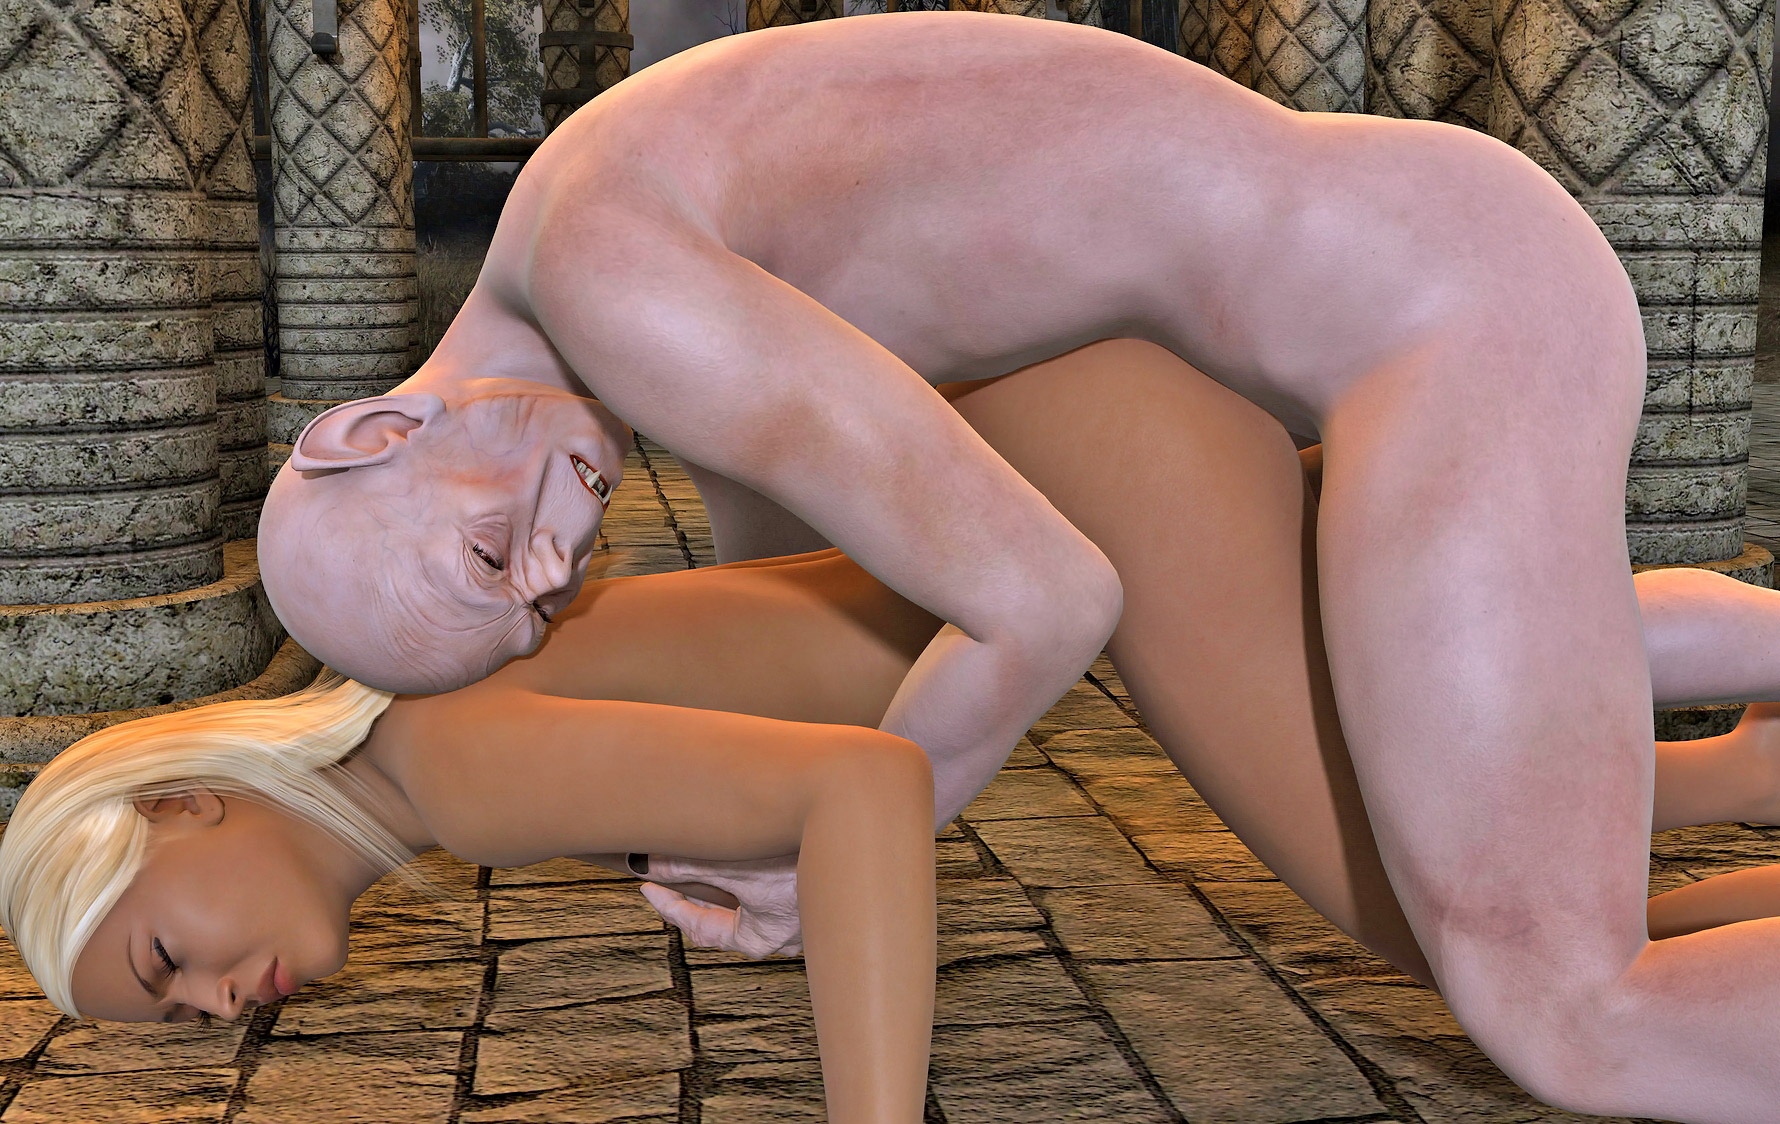 Free download 3d monster porn videos in  adult gallery